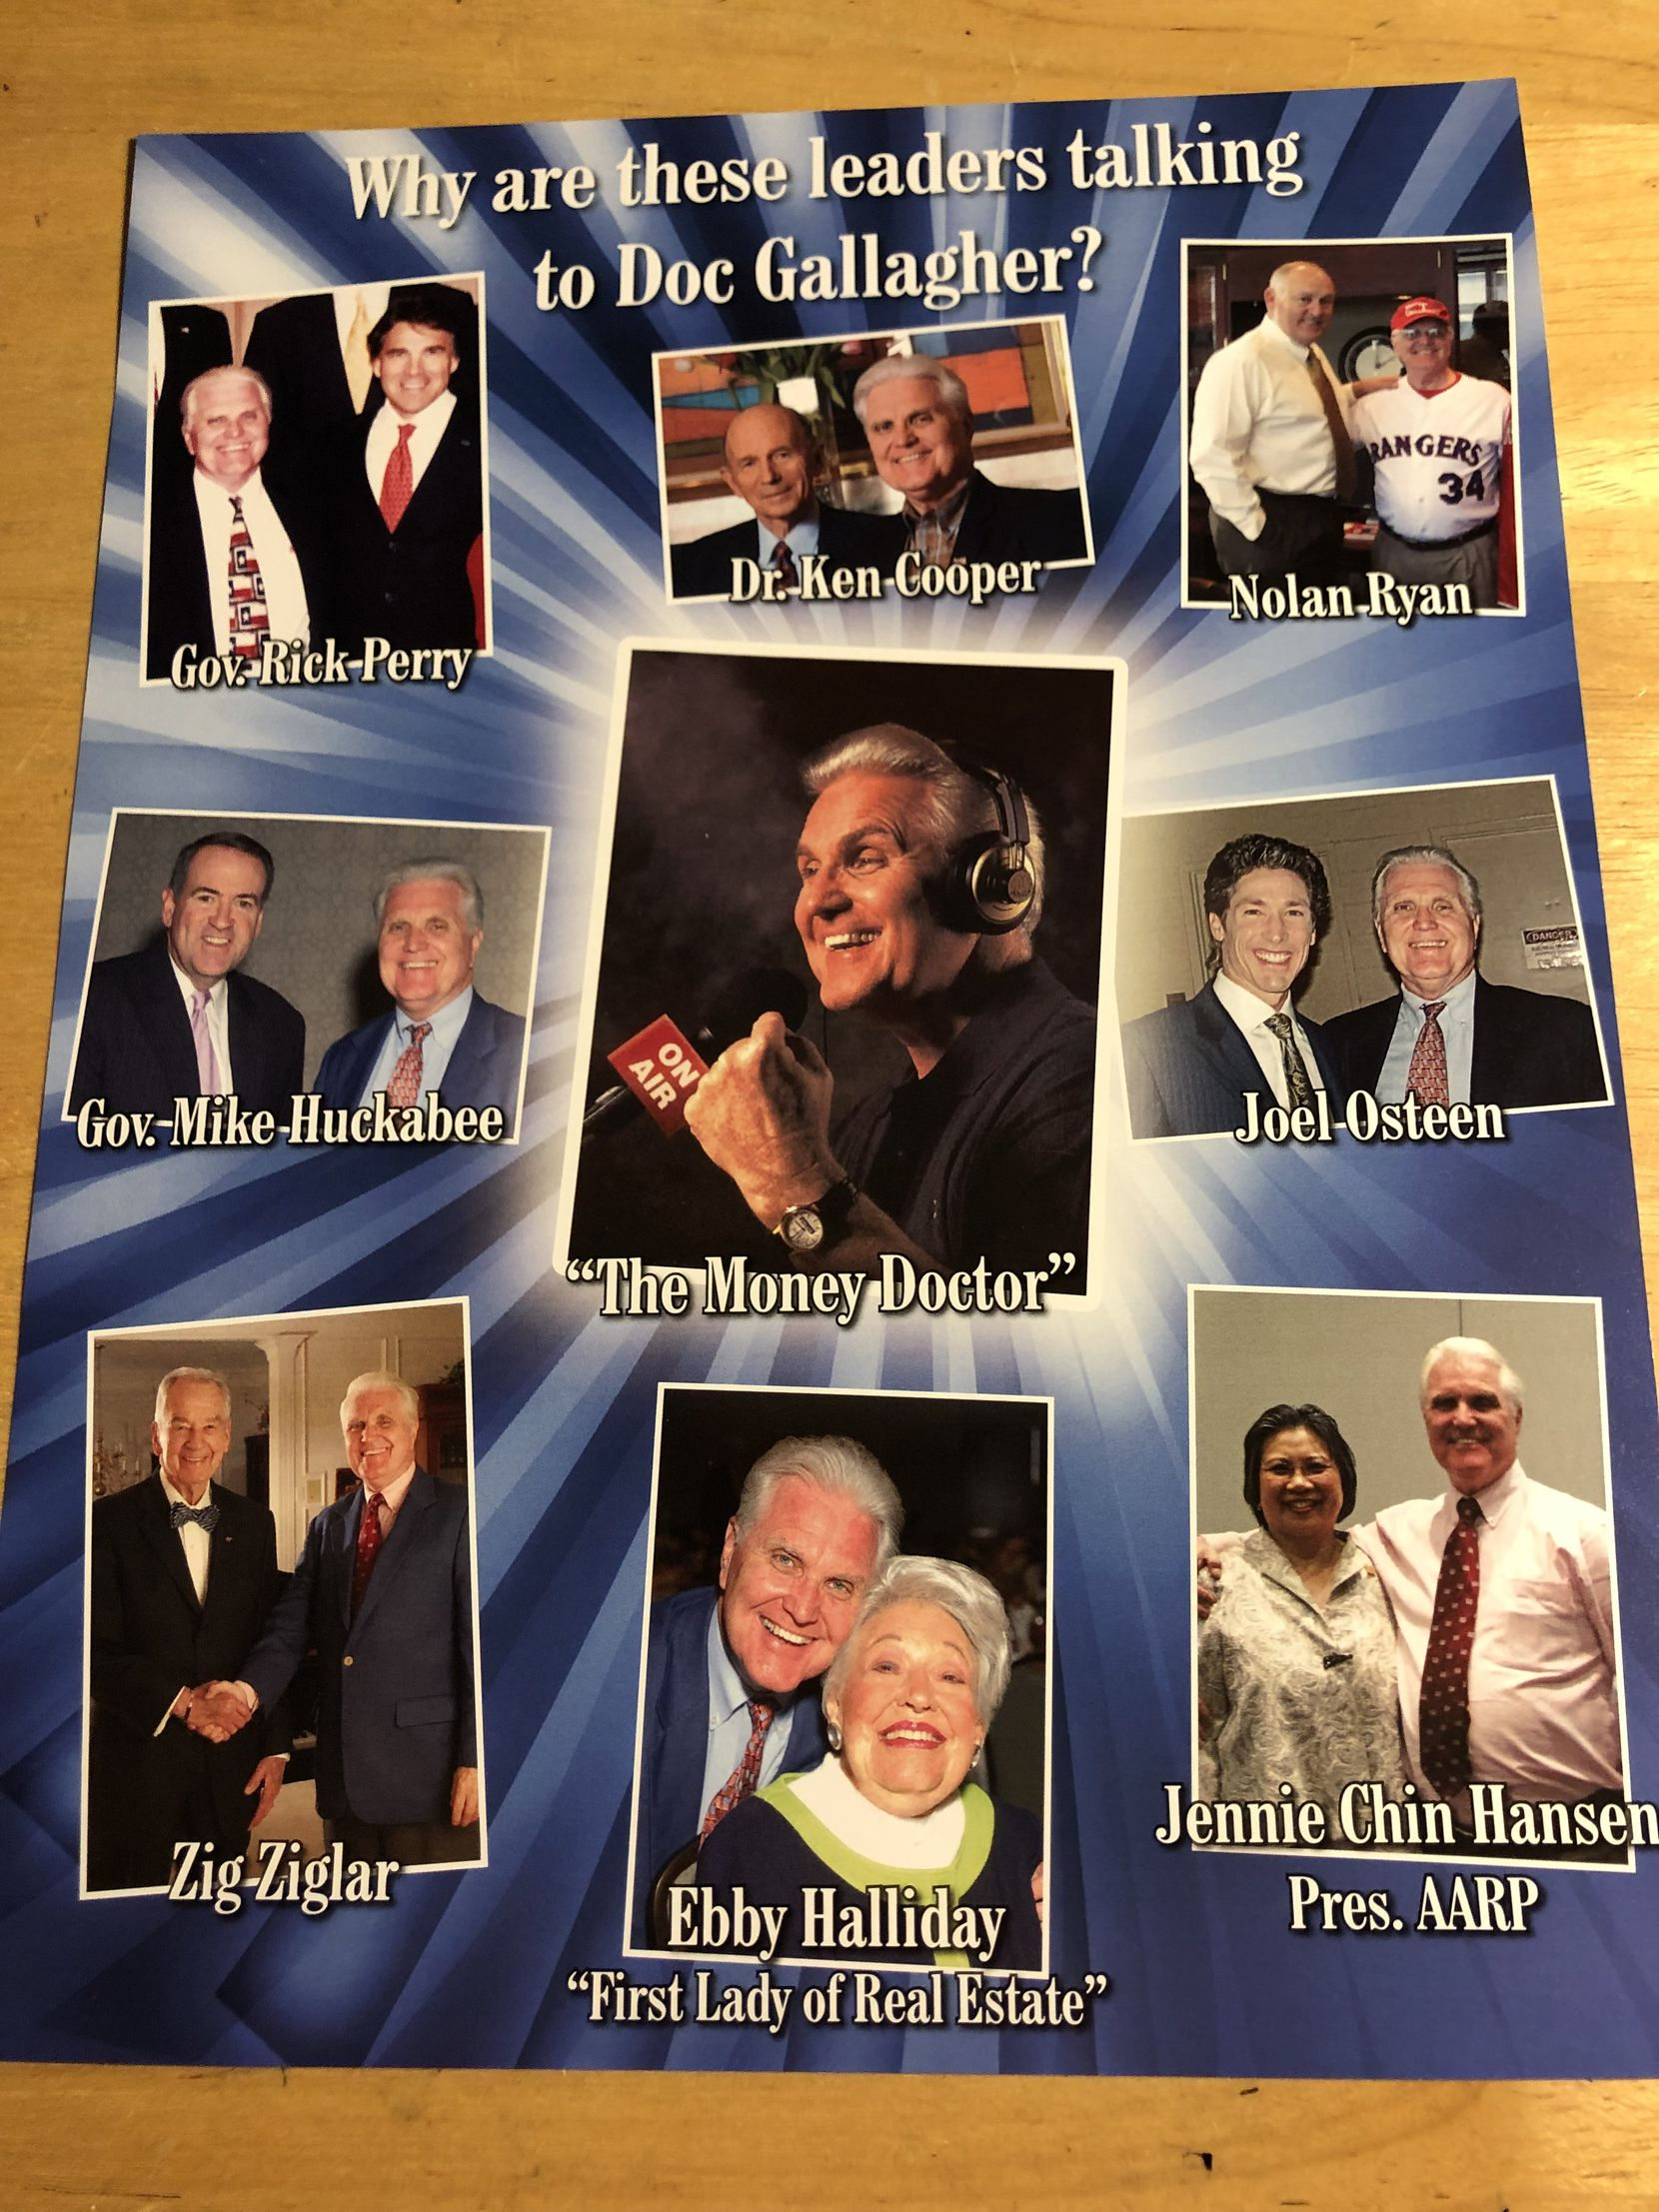 This one-sheet picked up by The Dallas Morning News Watchdog in a 2016 financial seminar shows the accused radio show host photographed with a who's who of Texas notables.